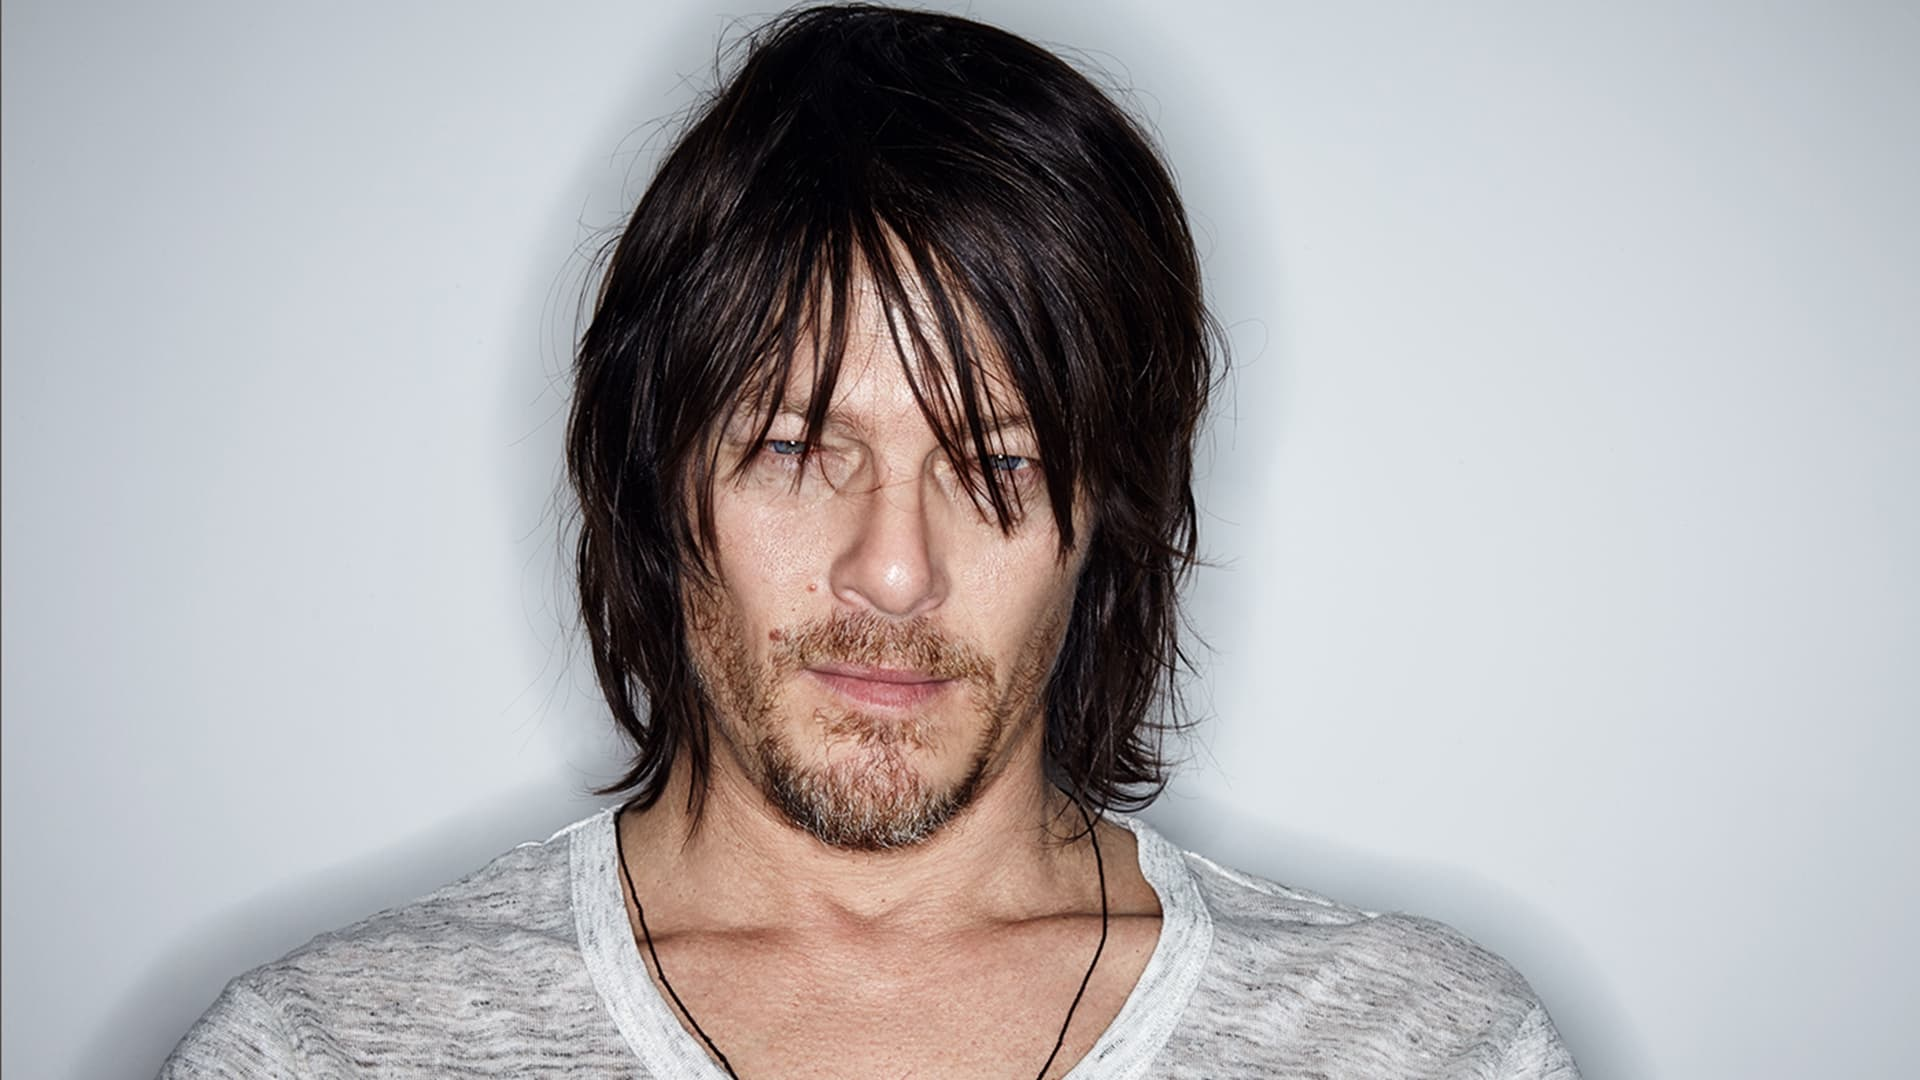 Norman Reedus wallpapers HD High Quality Download